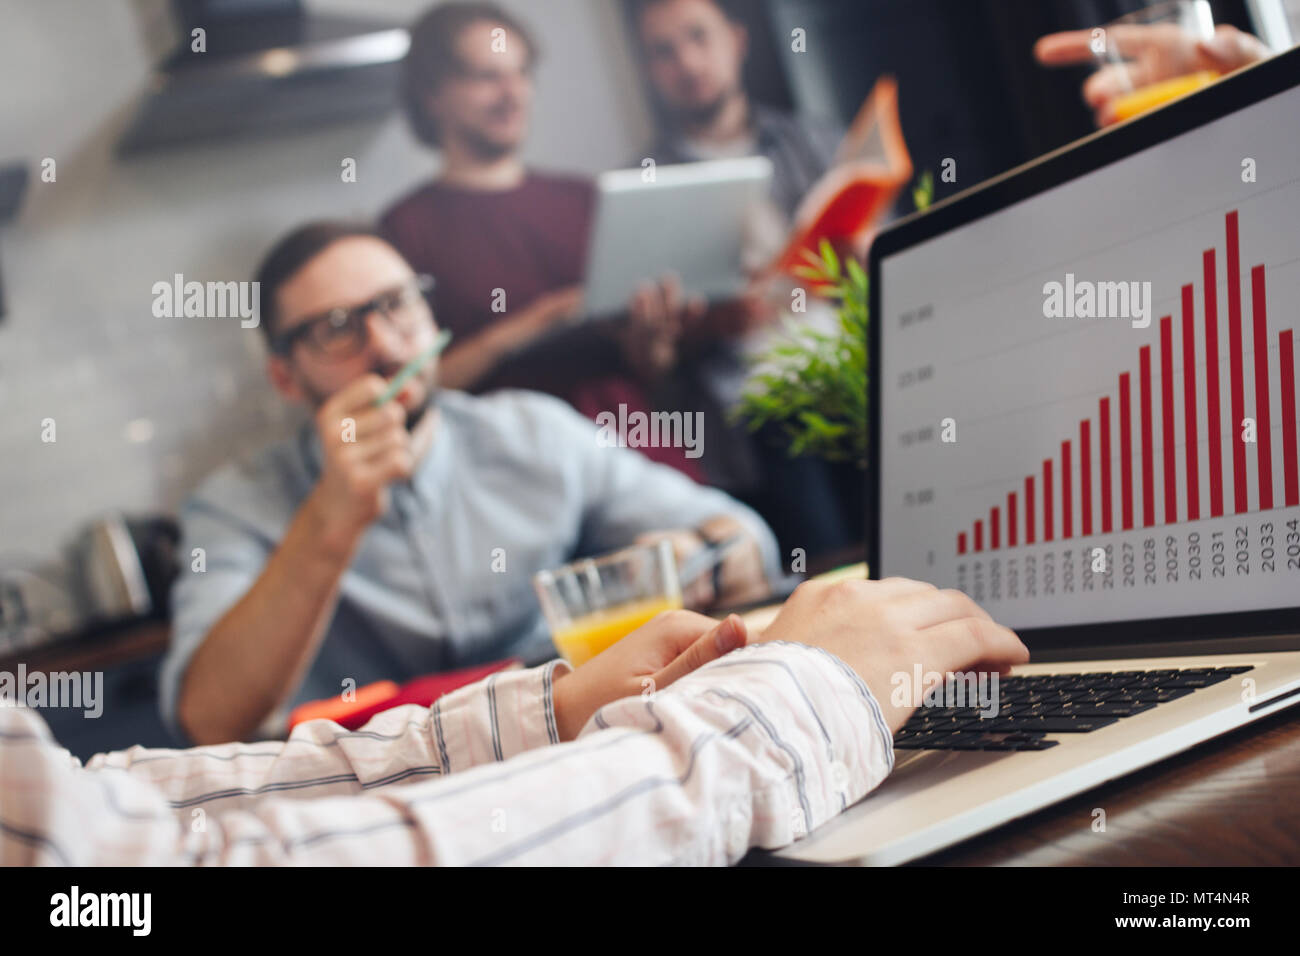 Group of young coworkers or finance analysts discuss about company indicators. Graph and diagram on laptop screen. Teamwork process concept - Stock Image